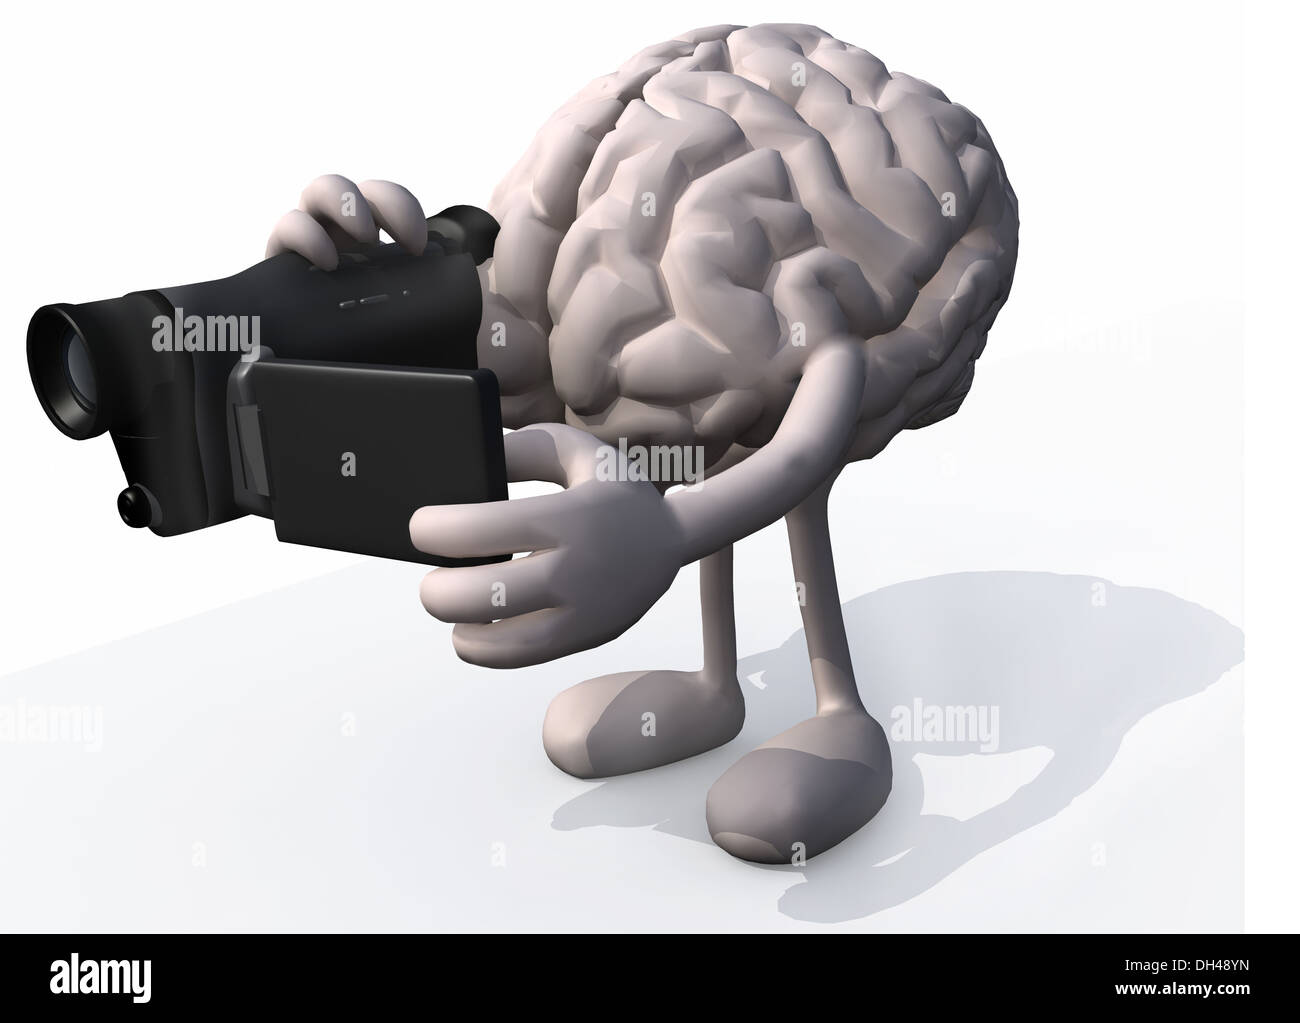 human brain with arms, legs and digital video camera while framing ...